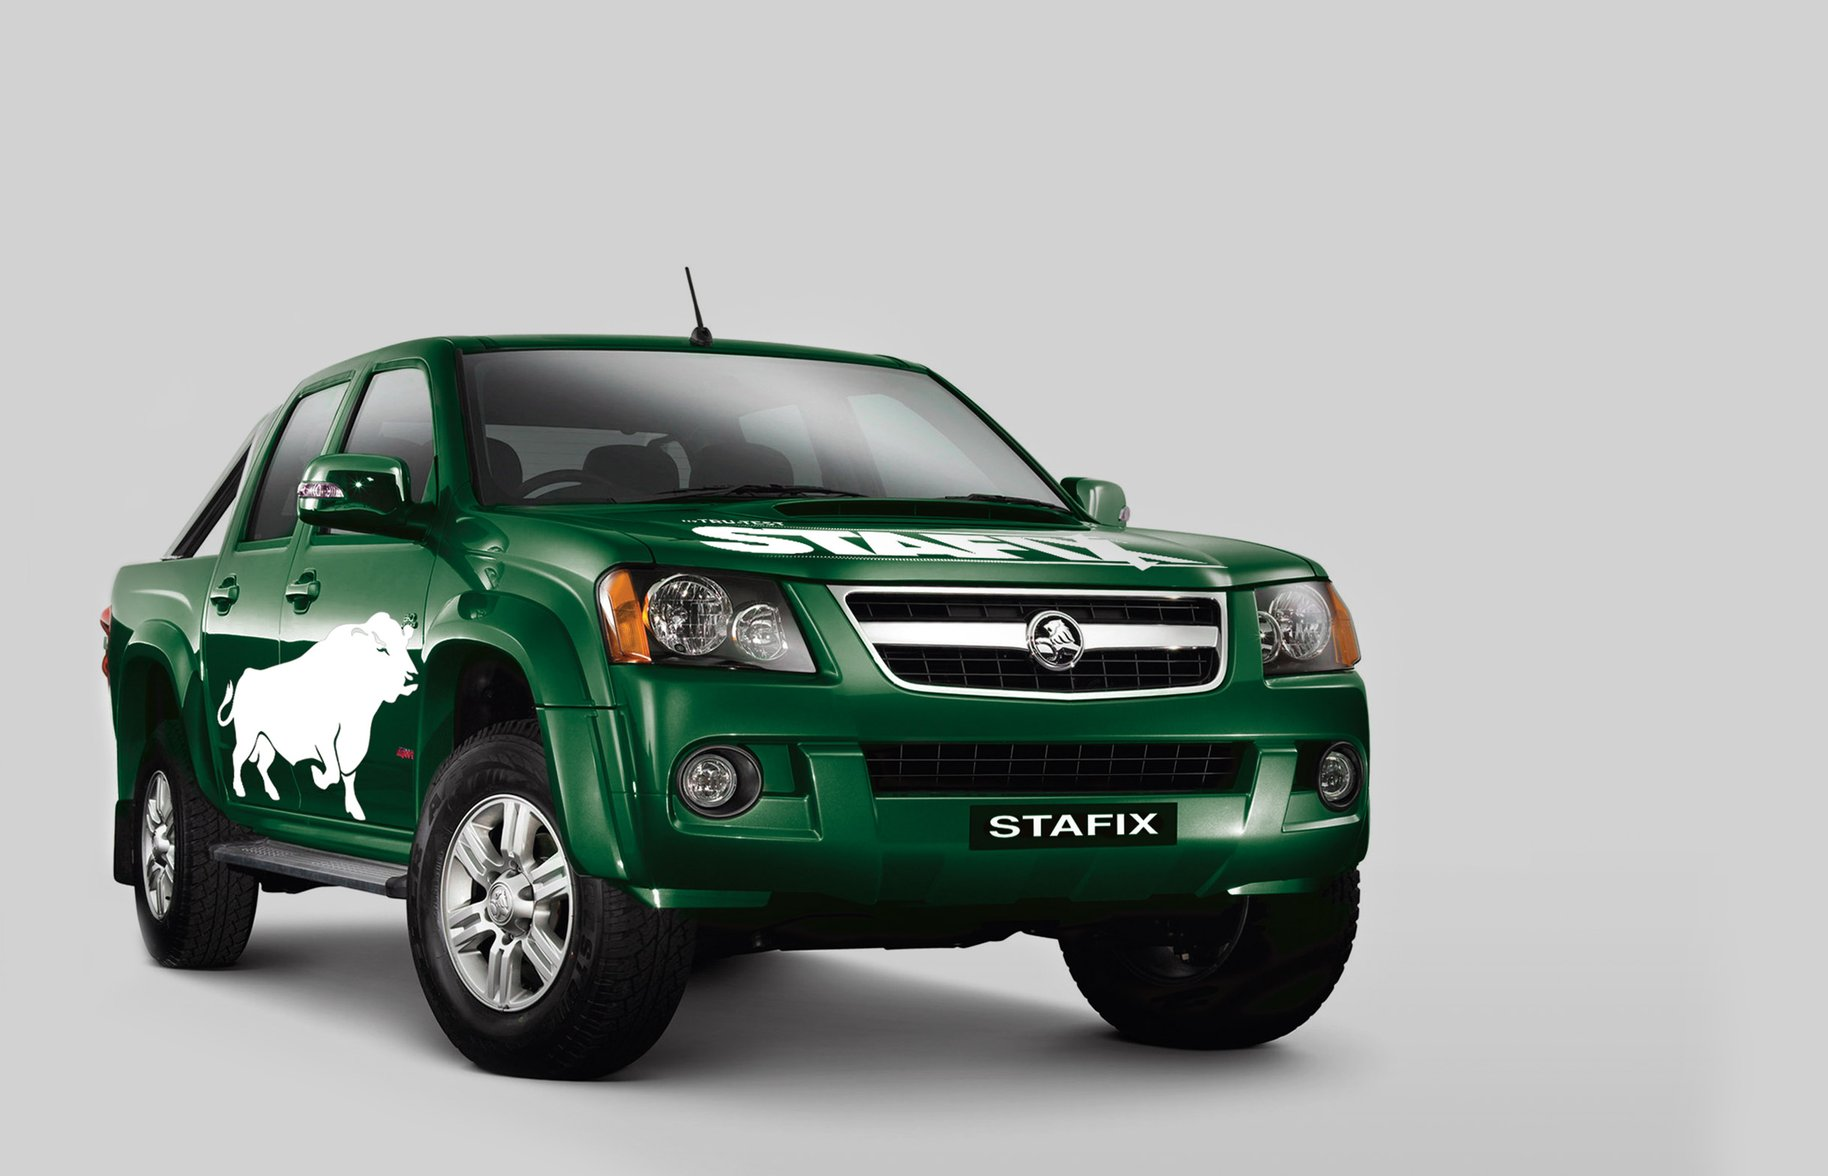 Stafix vehicle branding